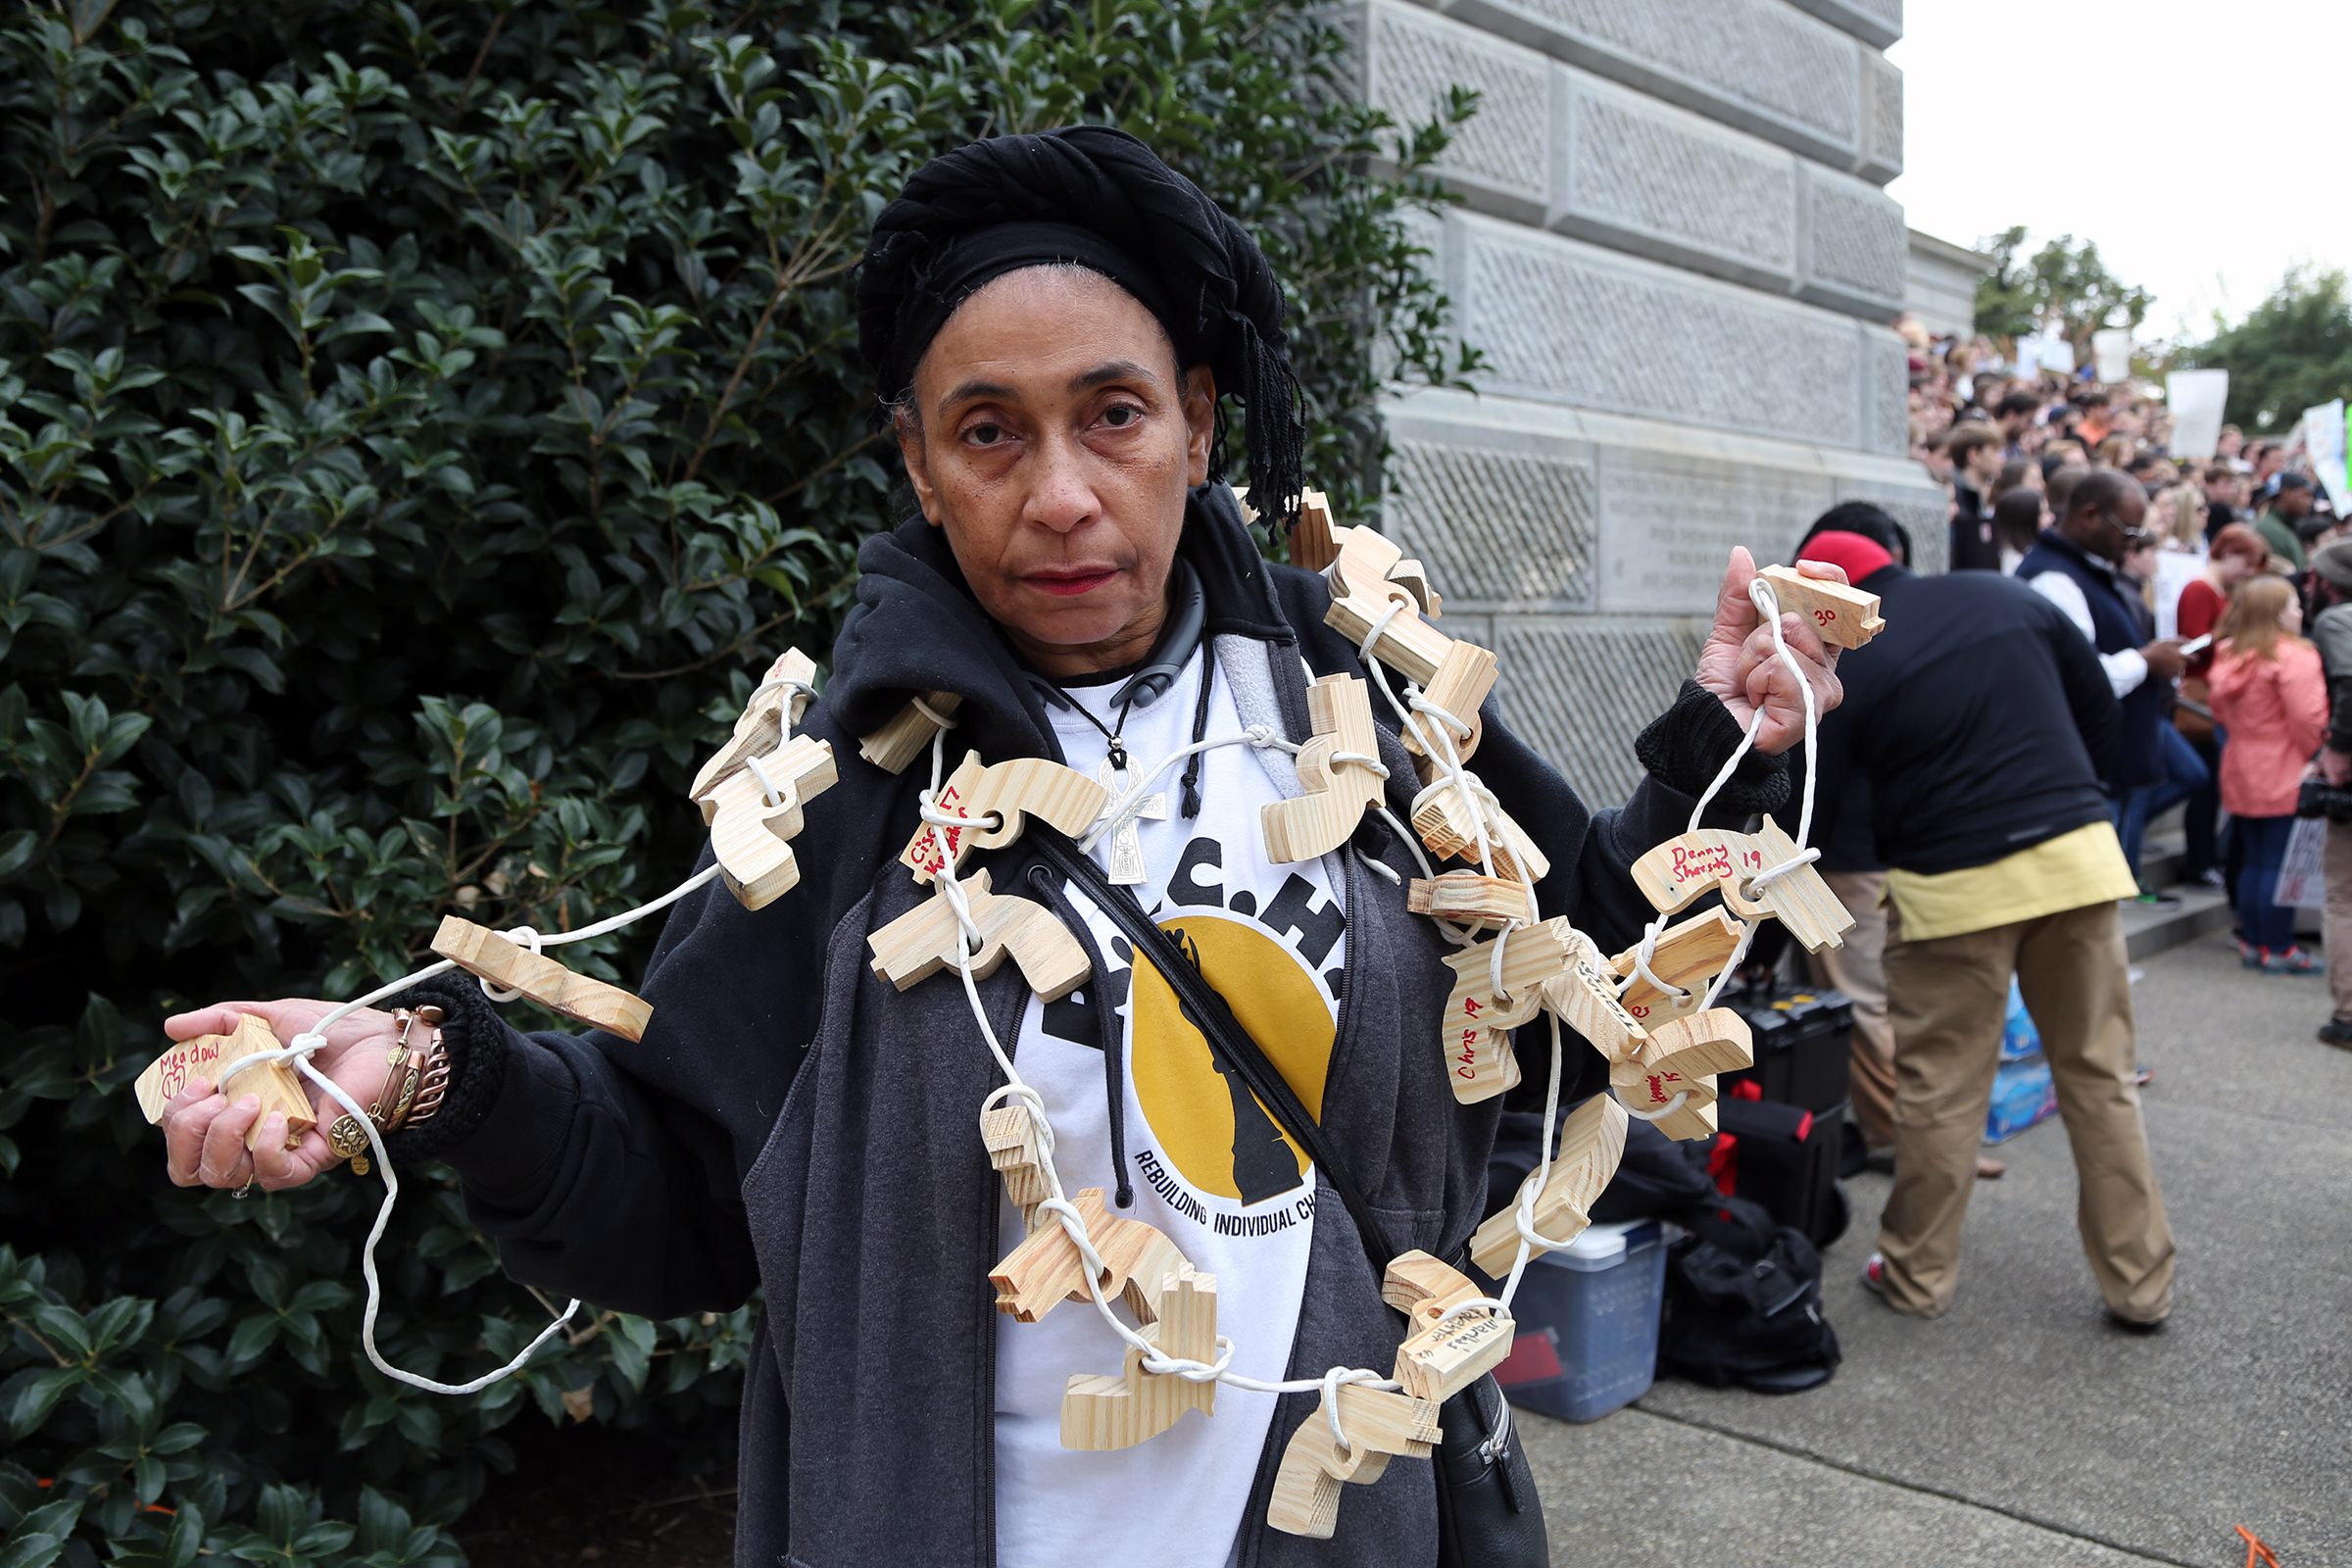 Mama G wore strands of wooden guns for relatives and friends of gun violence victims to sign. She estimated she's get about 50 signatures at the march.